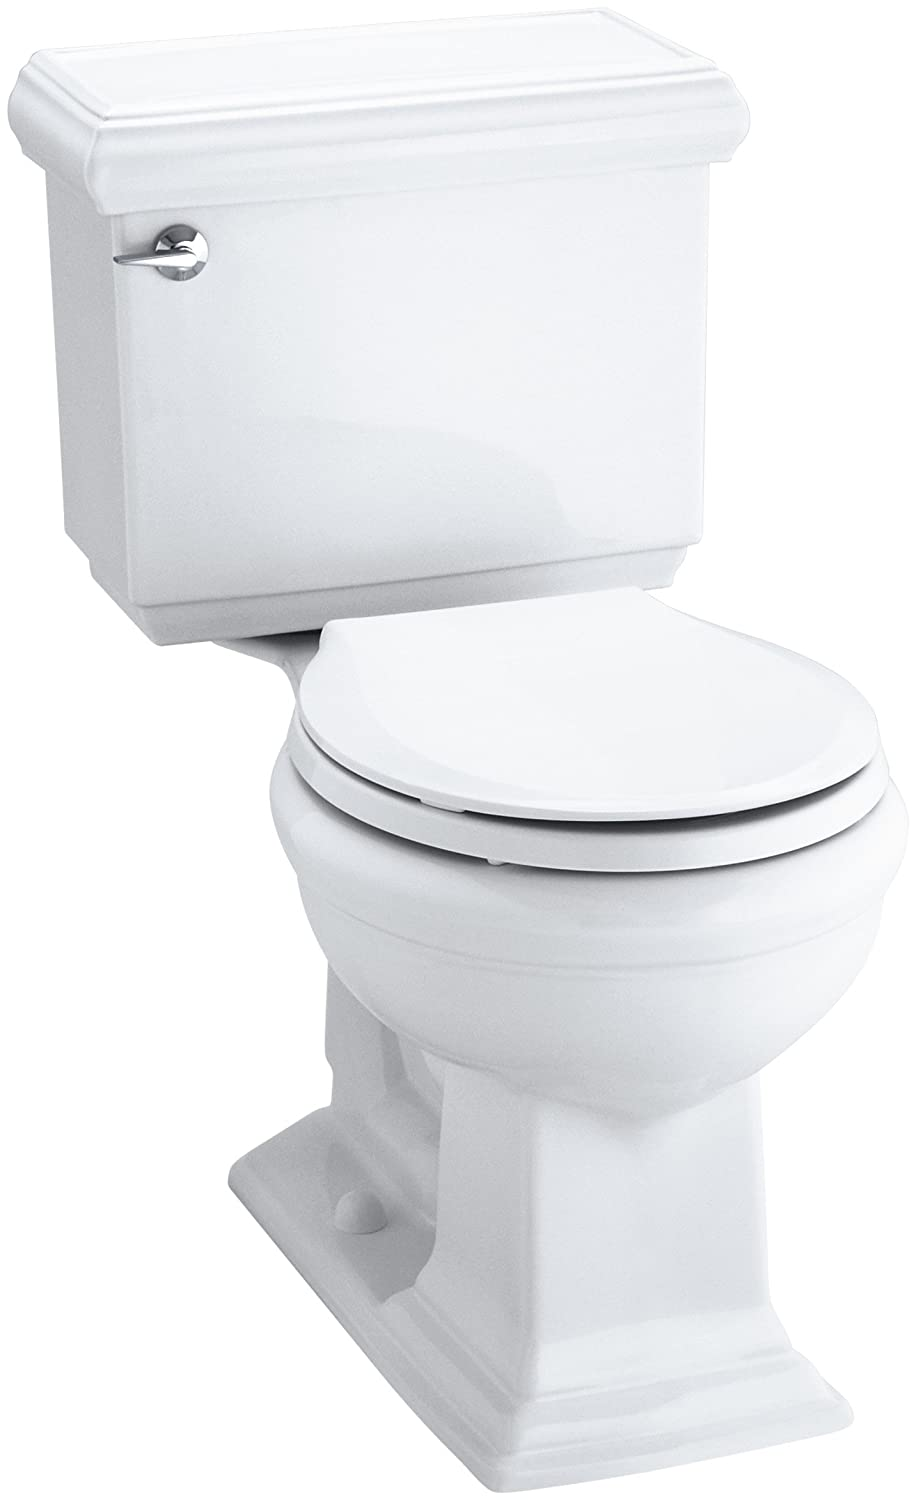 Kohler K-3986-0 Memoirs Comfort Height Two-Piece Round Front Toilet with Classic Design, White well-wreapped